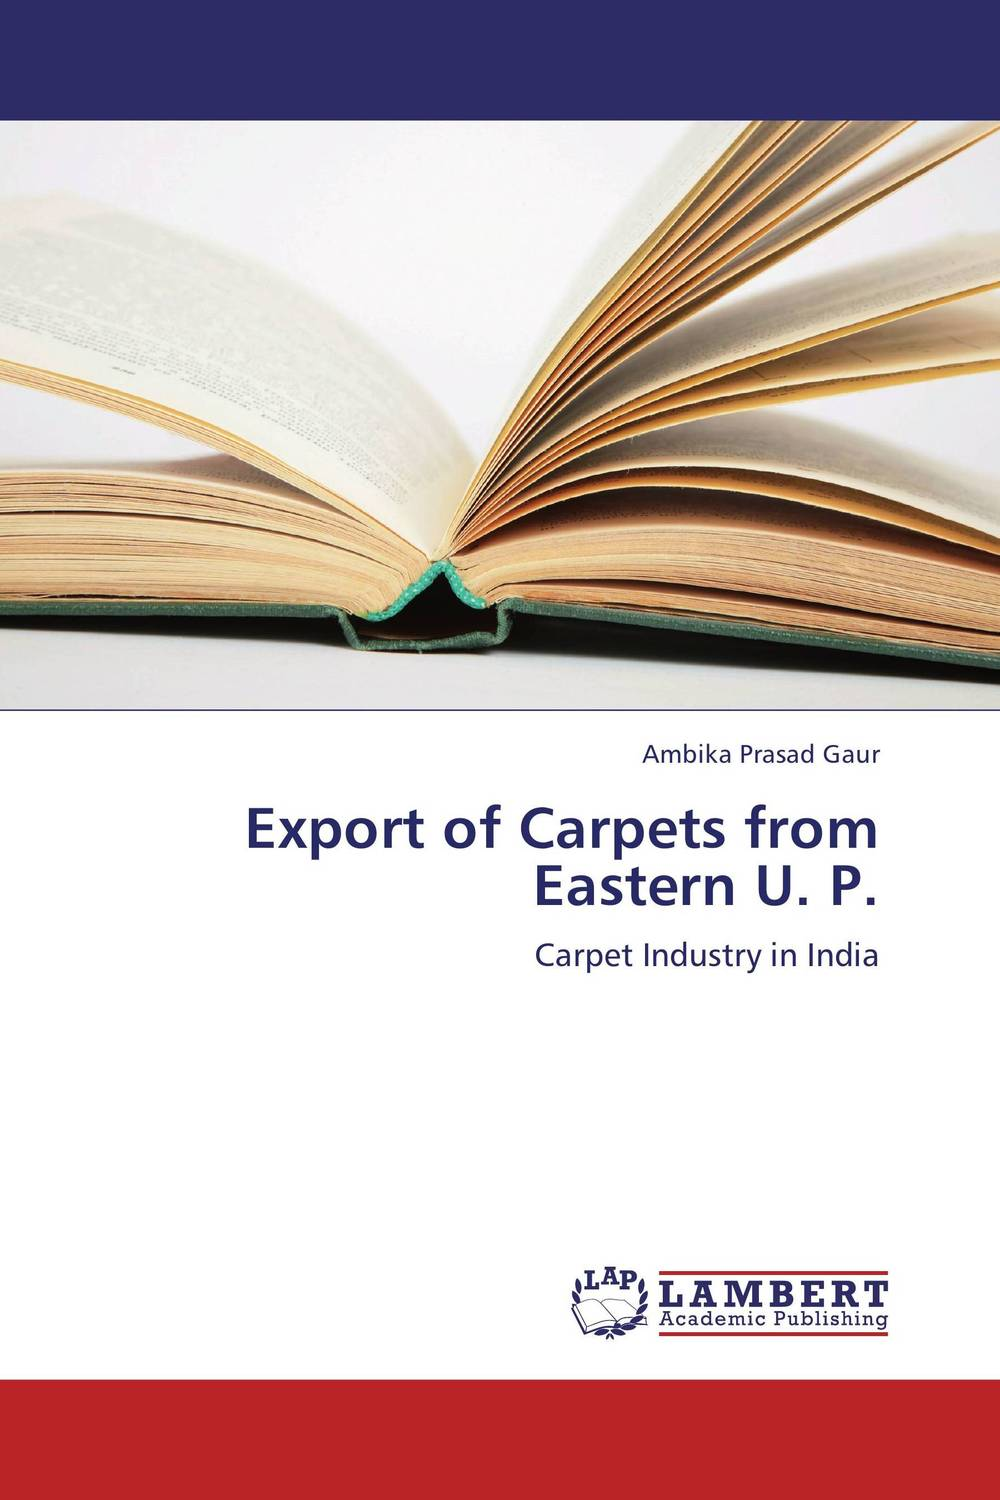 Export of Carpets from Eastern U. P. learning carpets us map carpet lc 201